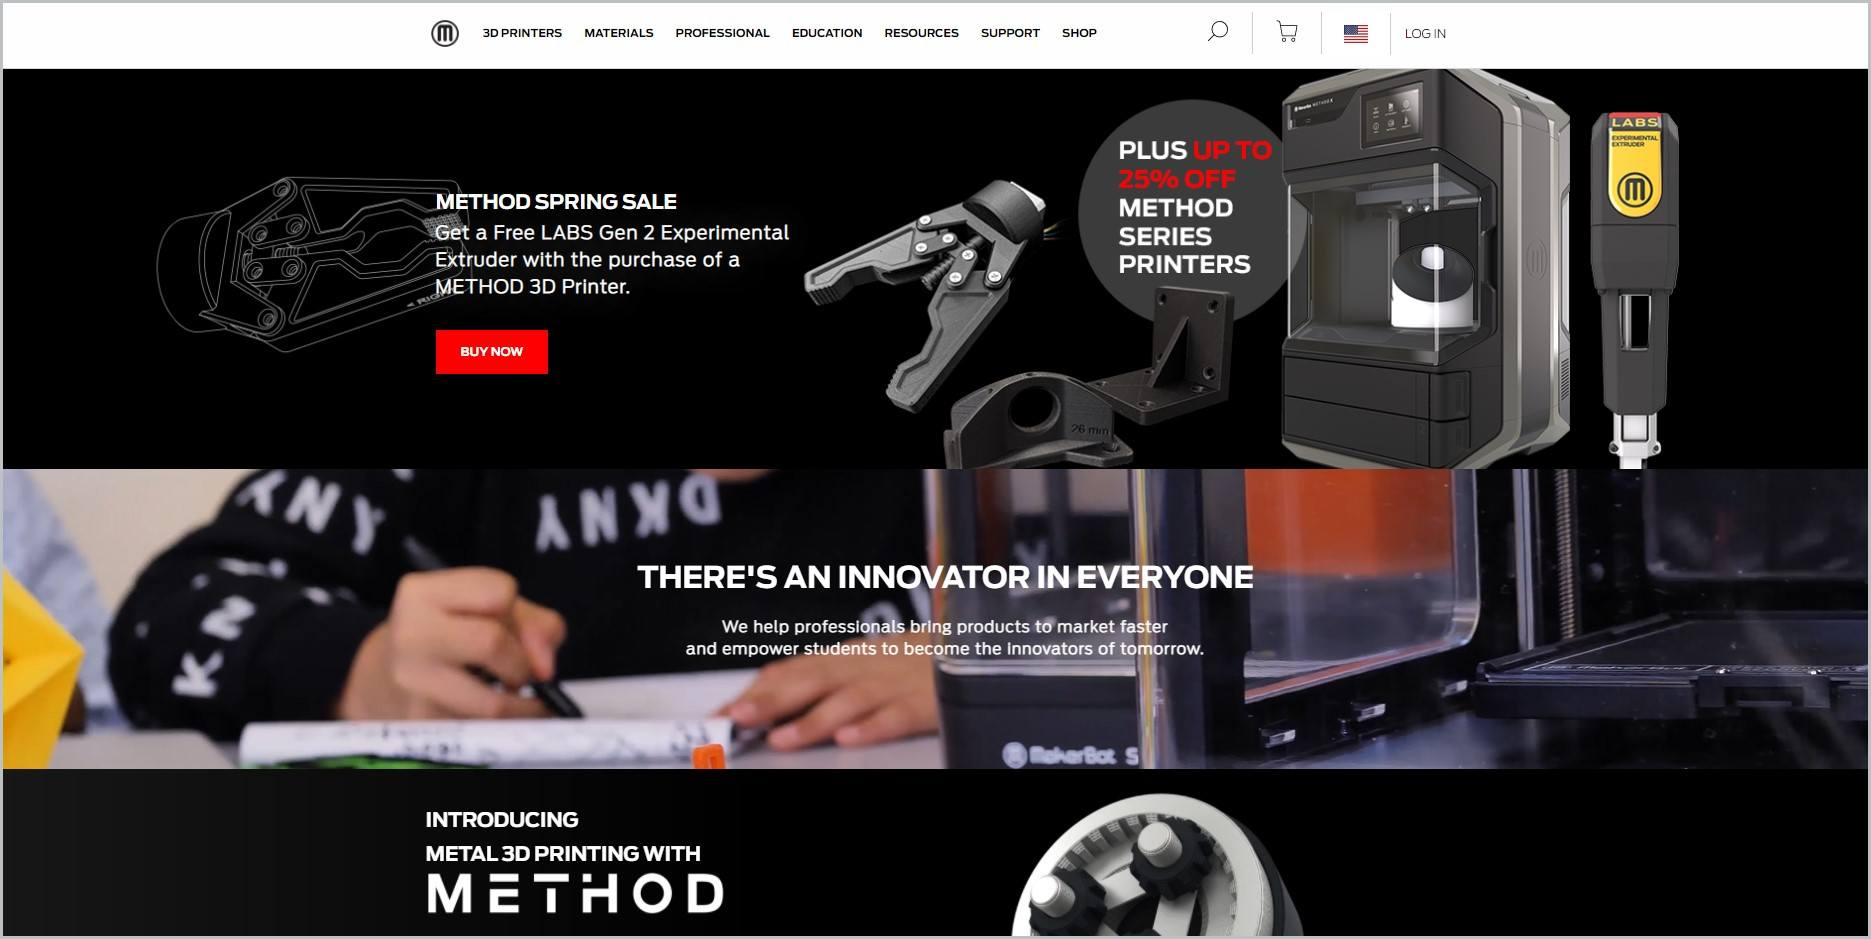 screenshot of MakerBot homepage showcasing some of its products